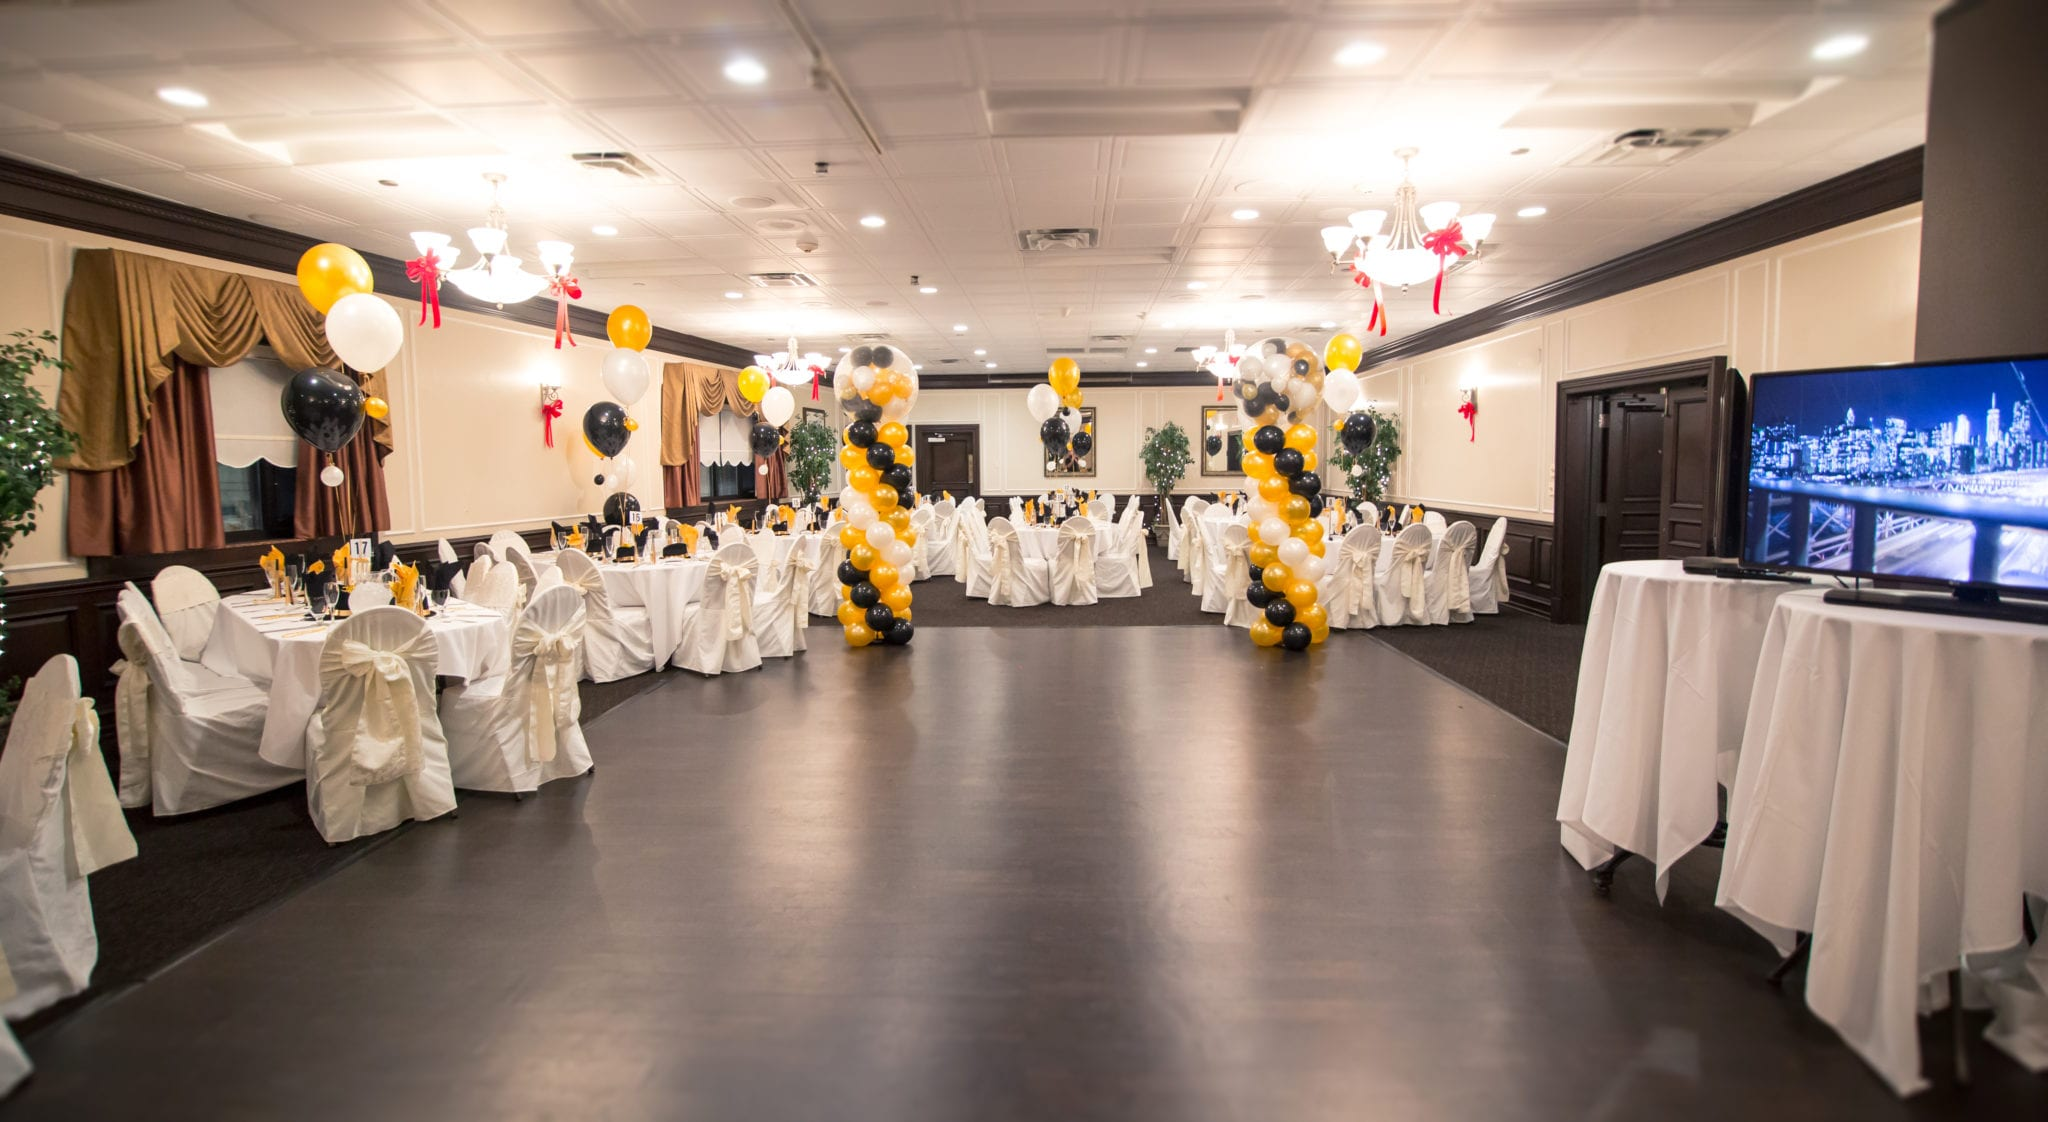 Cucina Calandra's New Year's Eve Grand Ballroom Bash